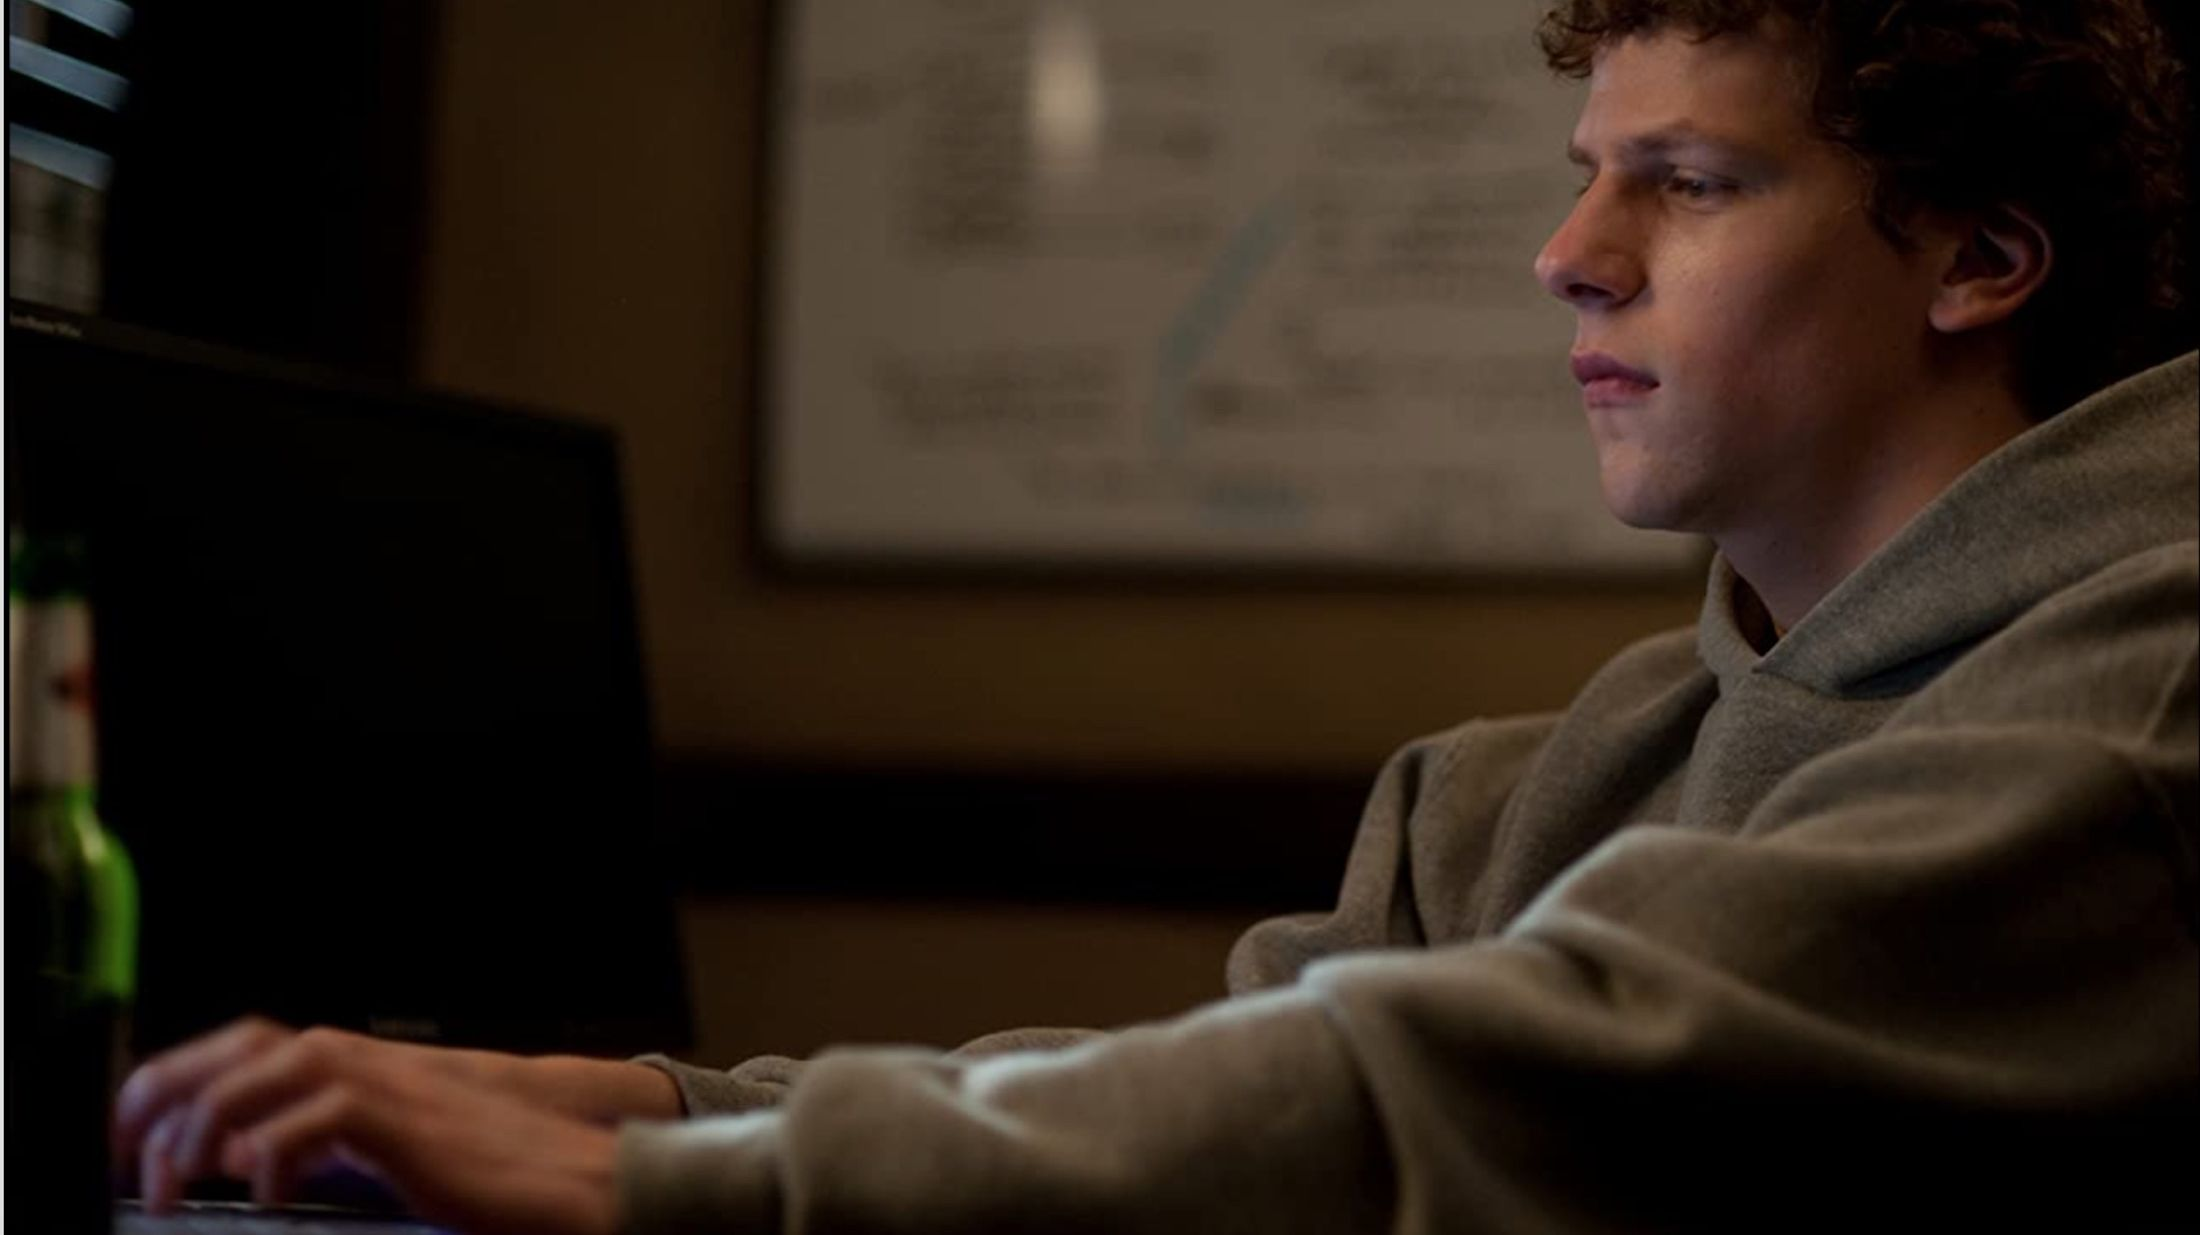 10 Facts About David Fincher's <em>The Social Network</em> for Its 10th Anniversary